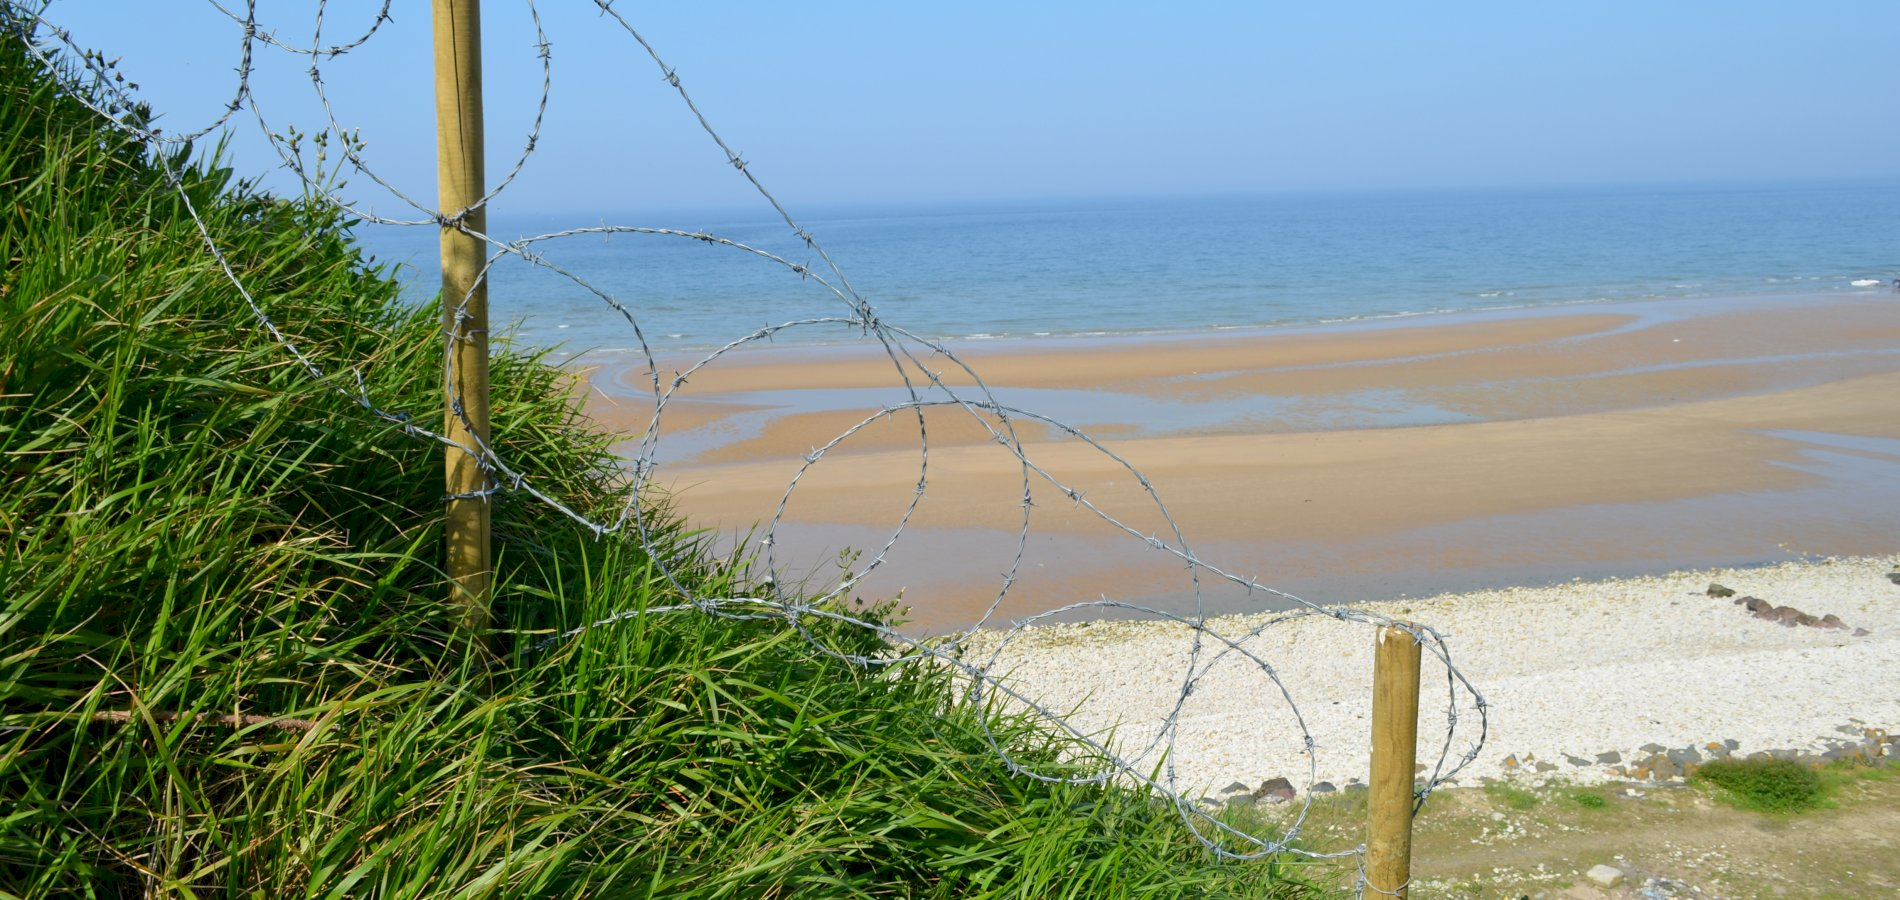 Ophorus Tours - Normandy D-DAY Beaches & Sights Private Shore Excursion From Saint-Malo